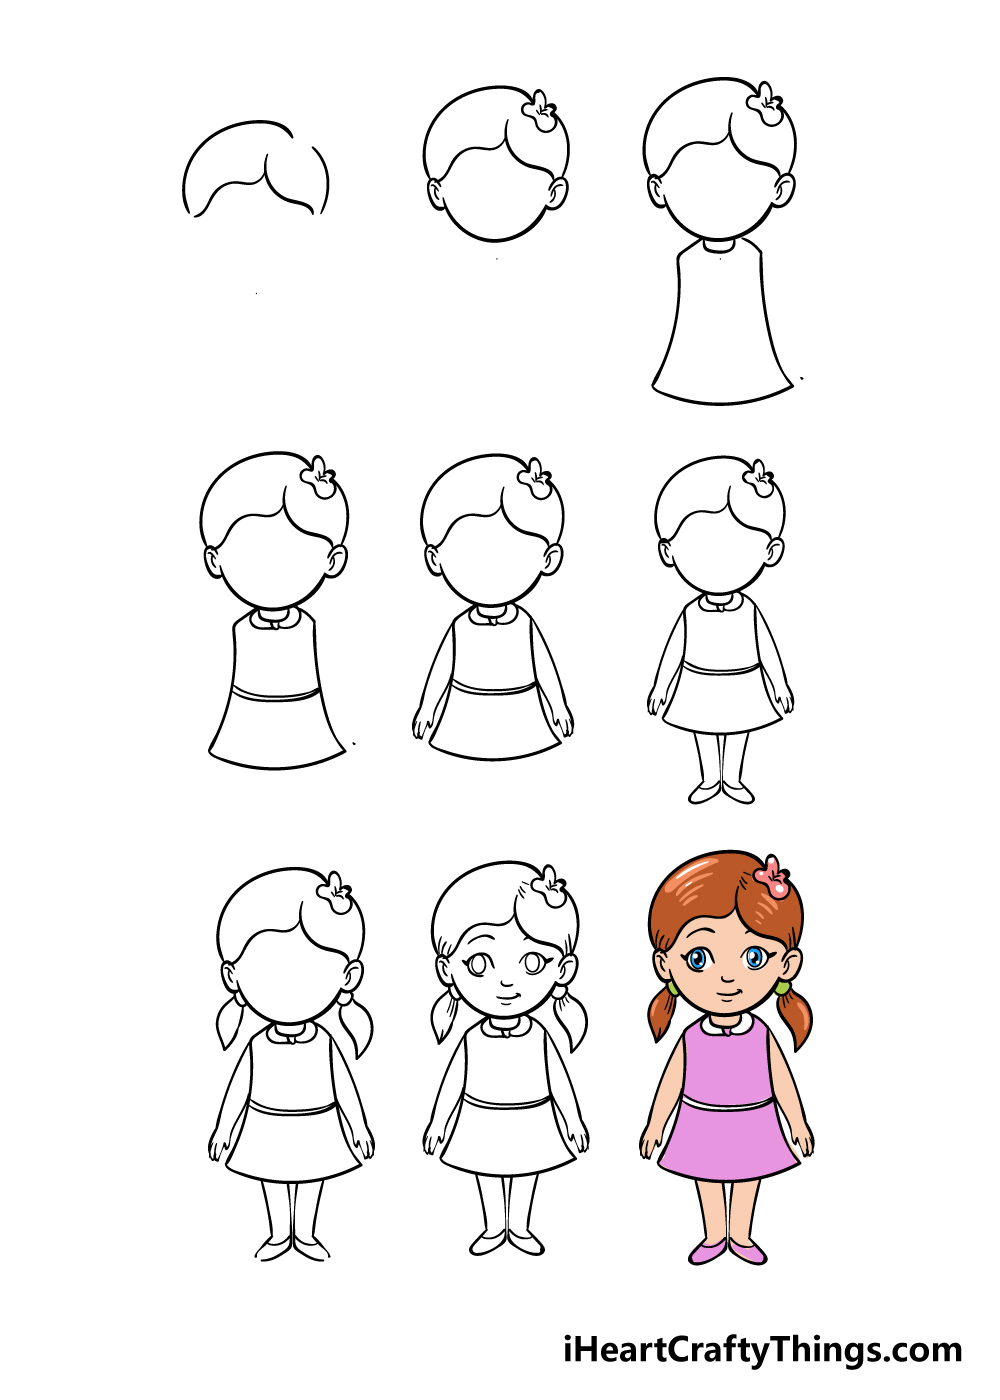 how to draw cartoon girl in 9 steps